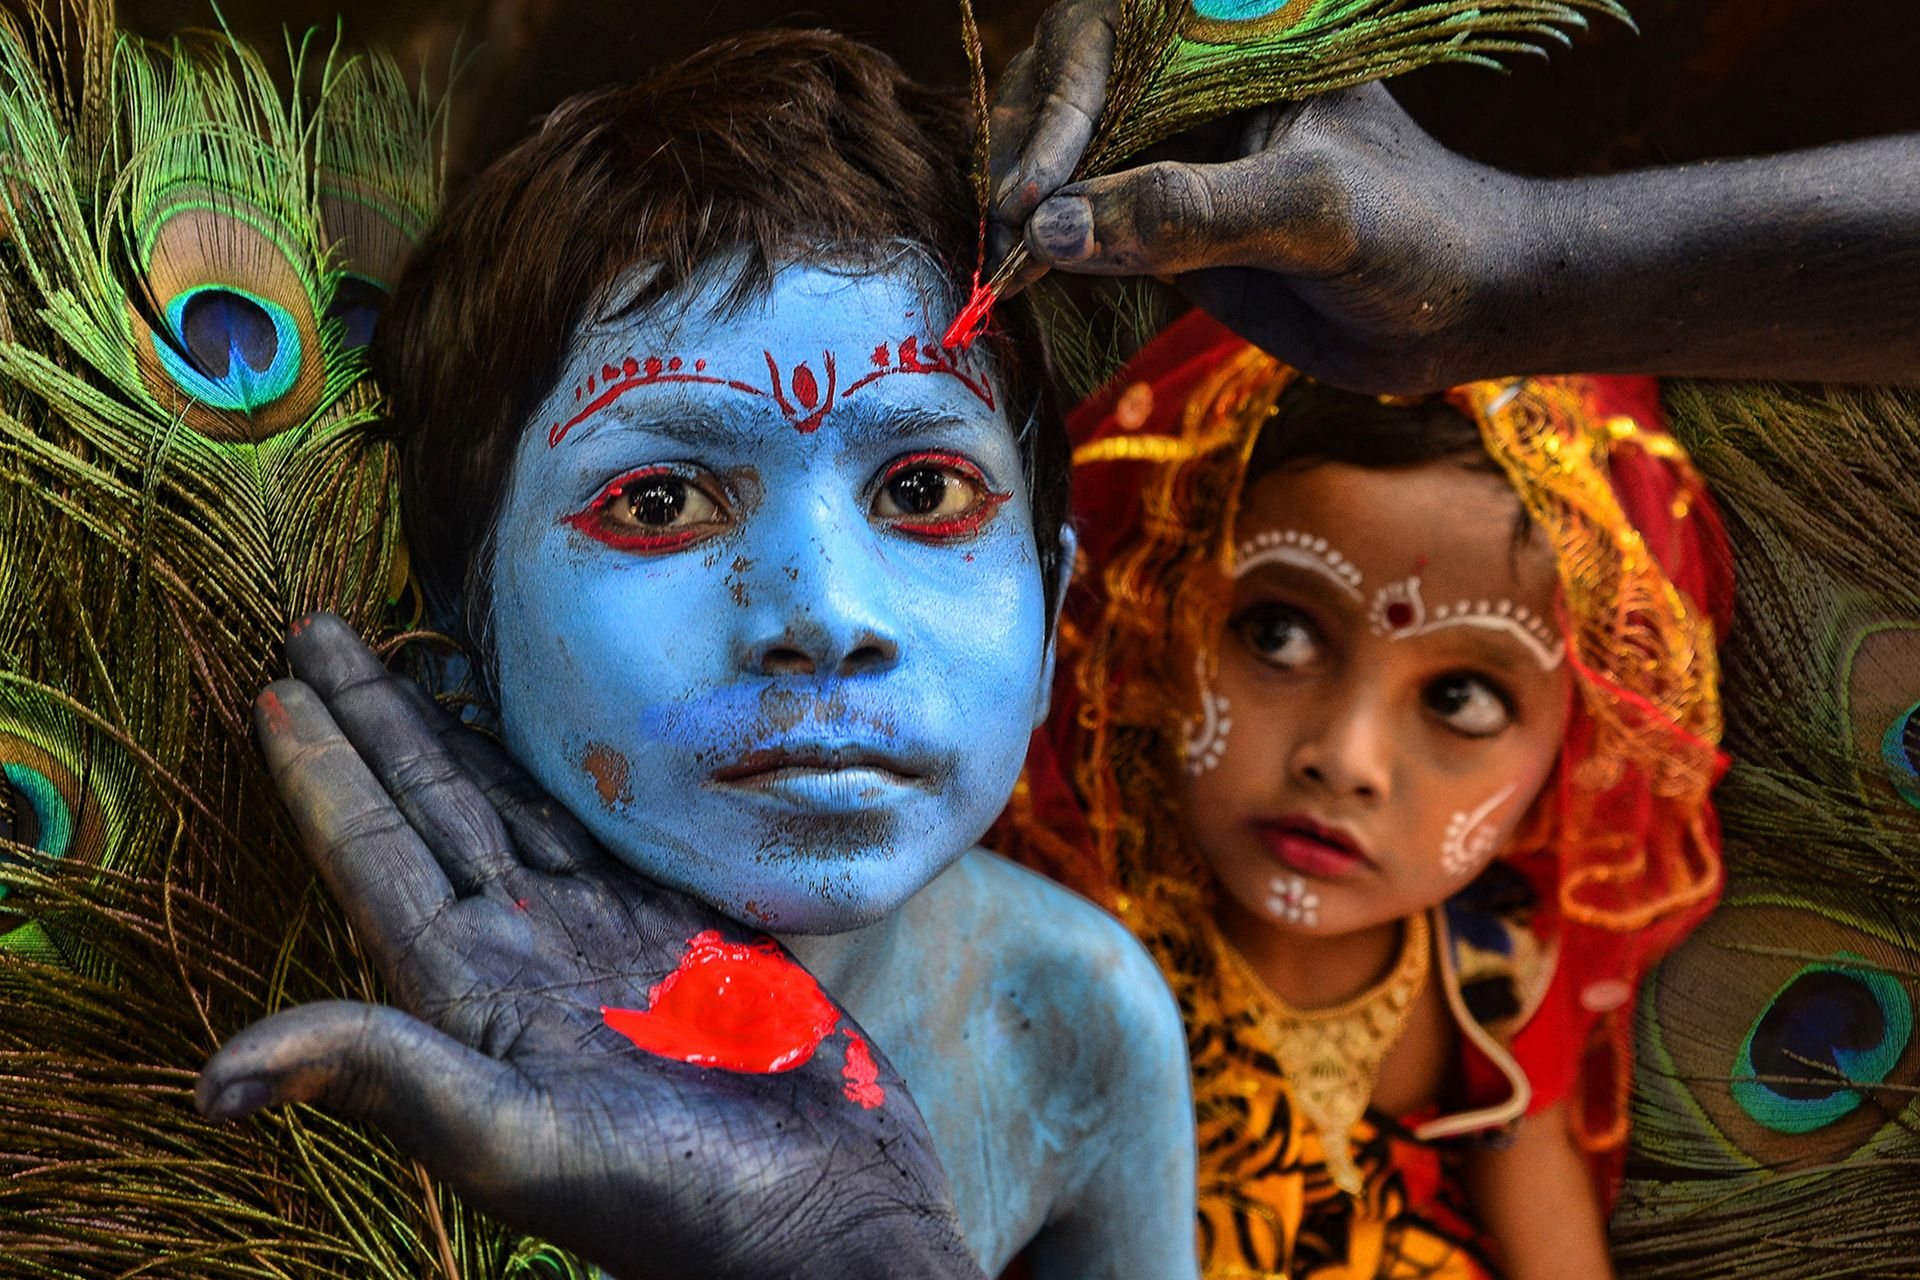 Boy painted as Krishna in India © Sanghamitra Sarkar